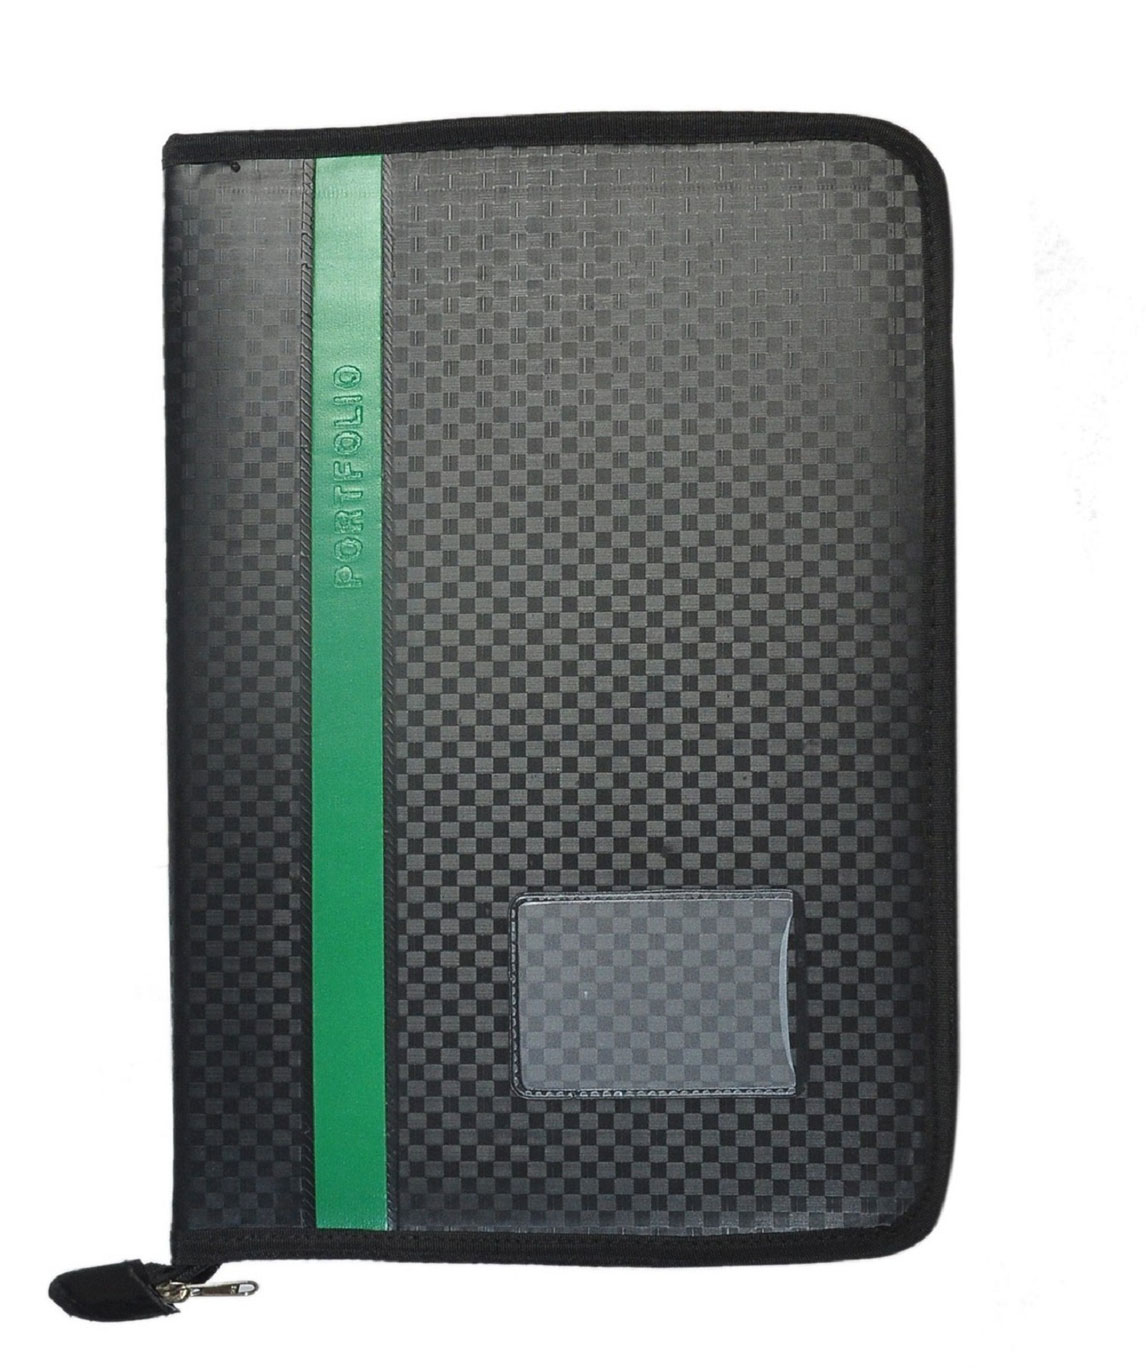 Leather Portfolio Certificate and Documents Holder(green)